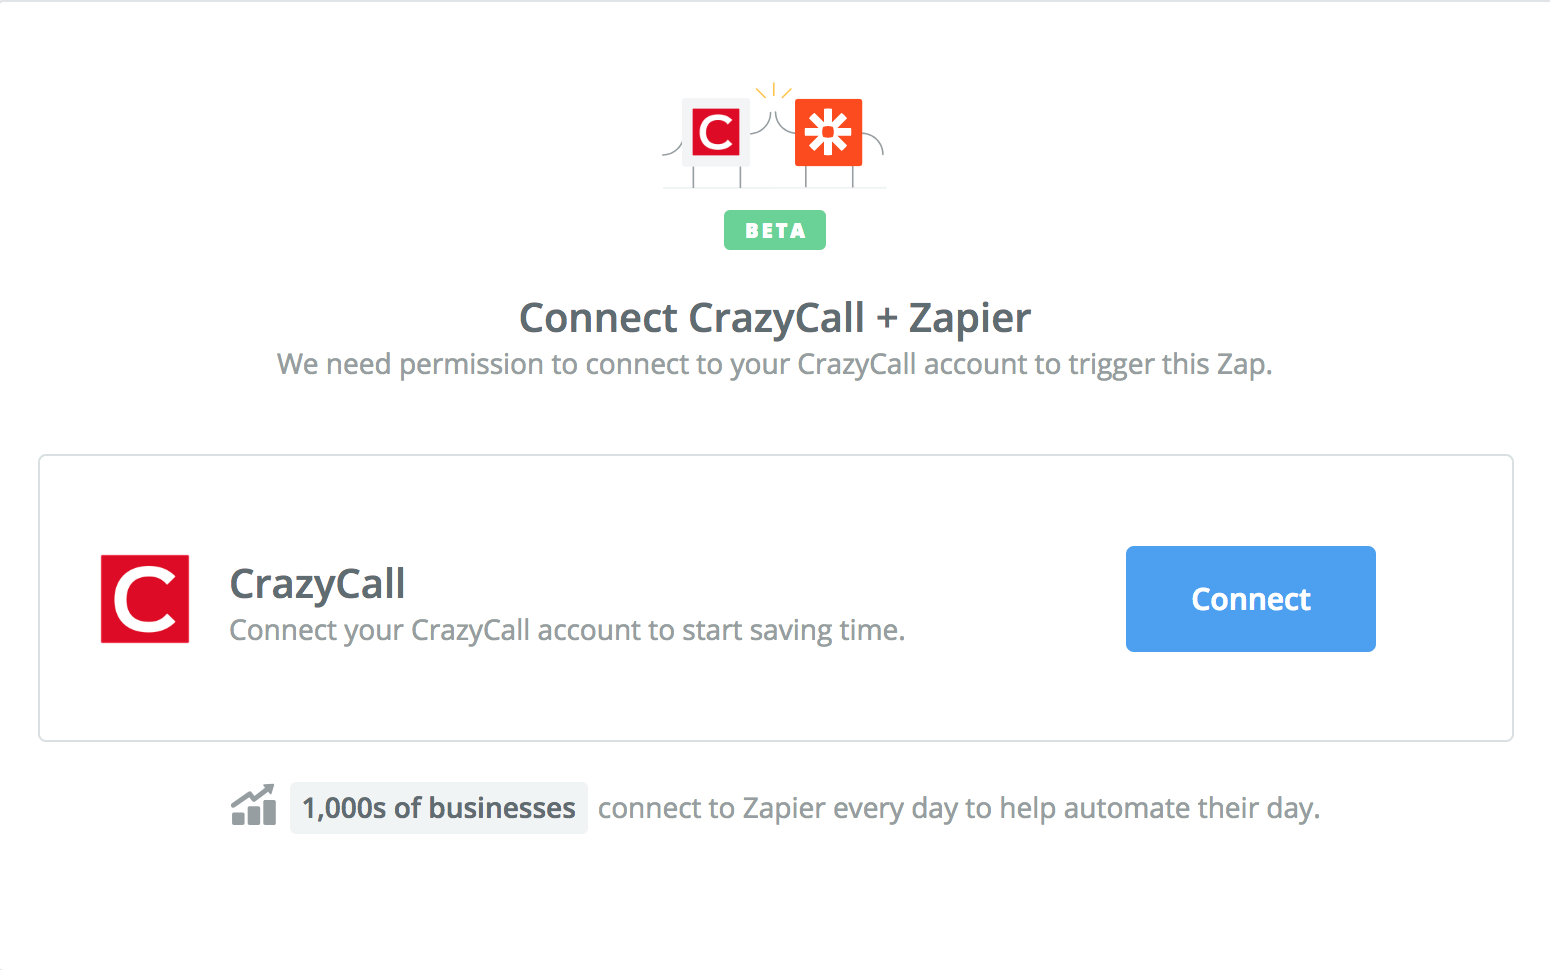 Click to connect CrazyCall